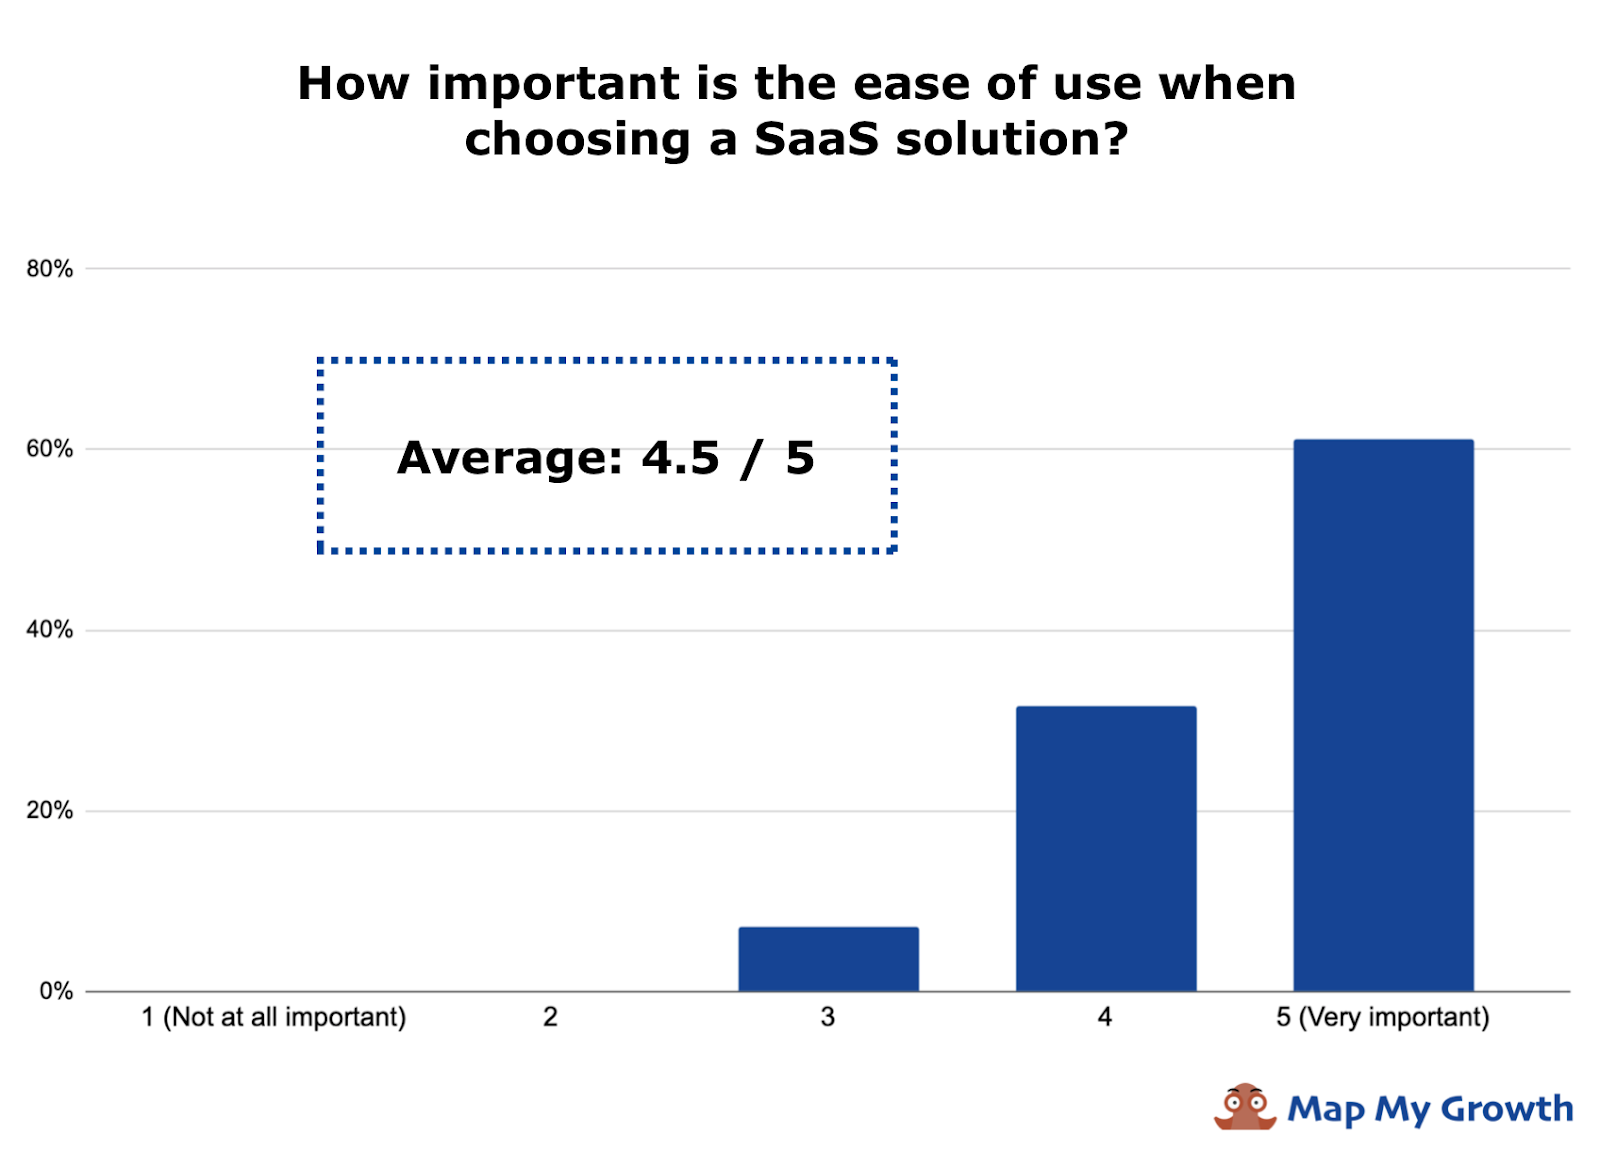 how important is ease of use when choosing a SaaS solution